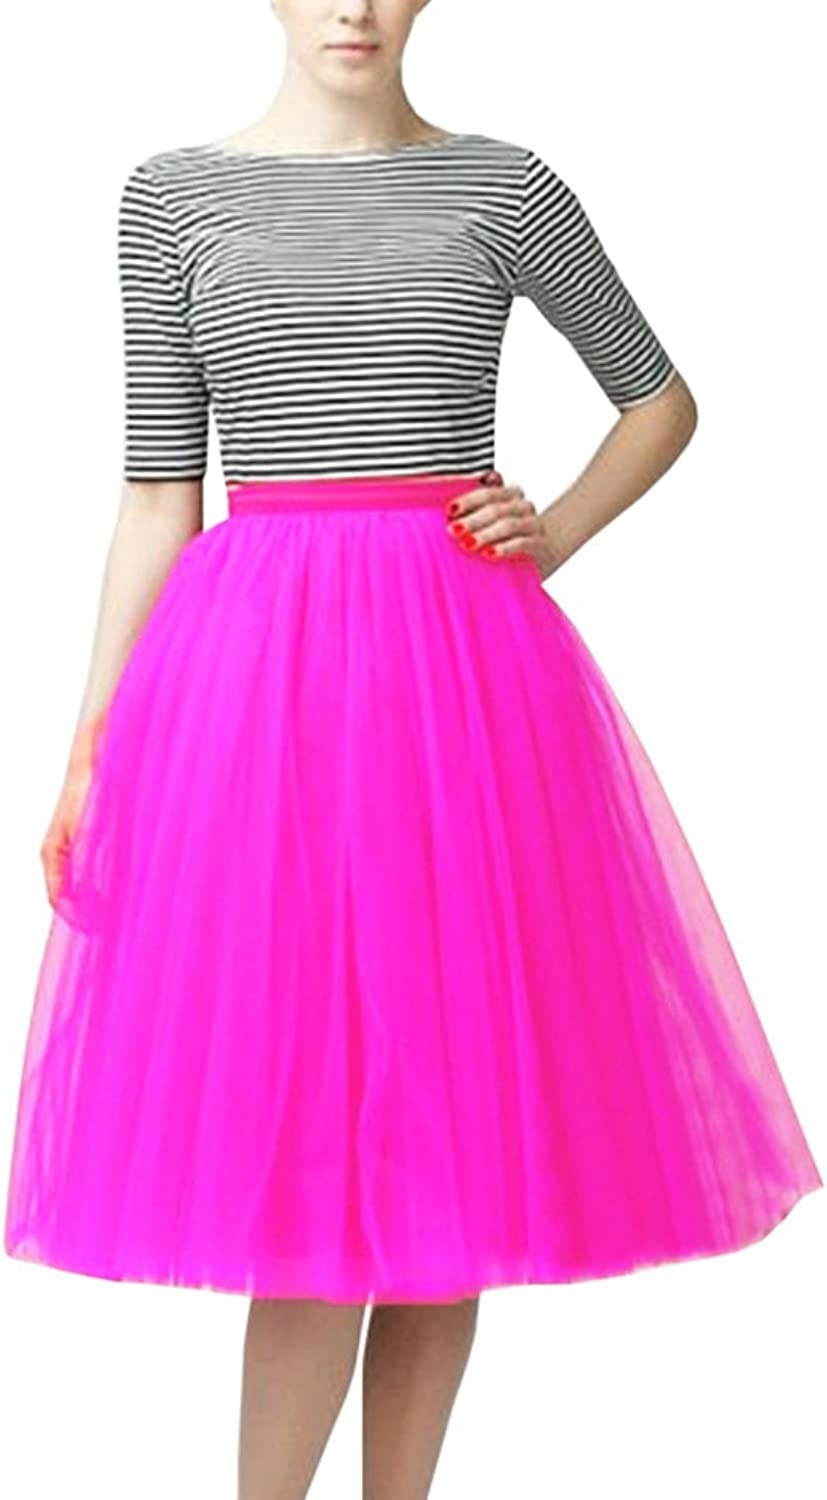 WDPL A Line Short Knee Length Tutu Tulle Prom Party Skirt Large Hot Pink